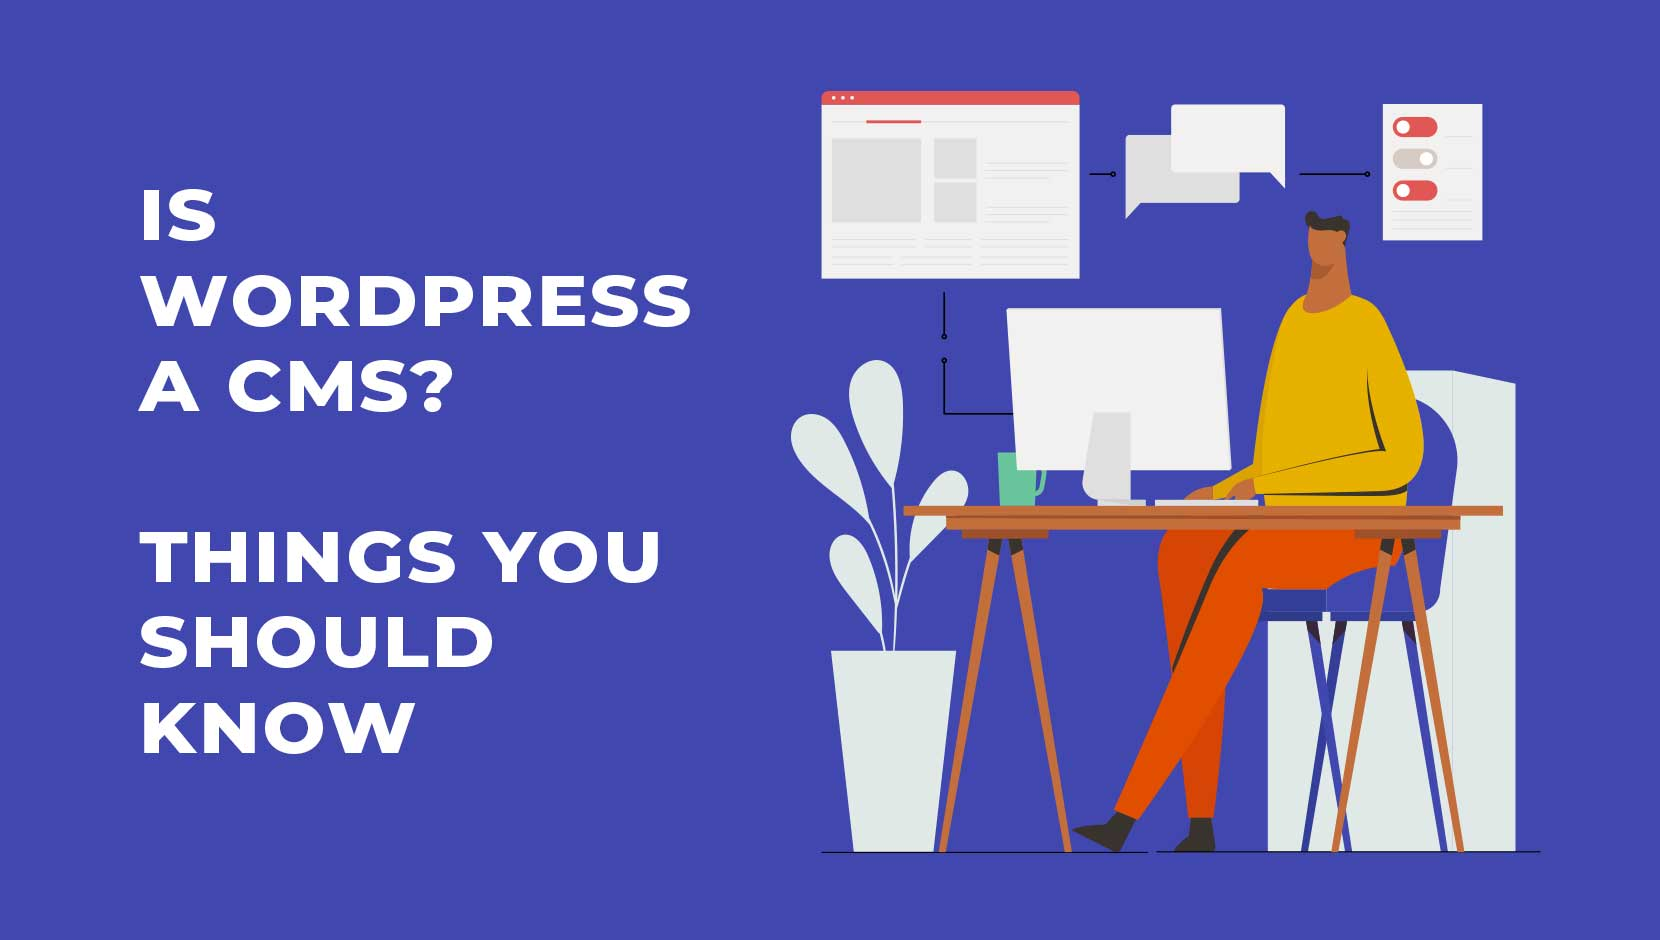 Is WordPress a CMS? 3 Things You Should Know